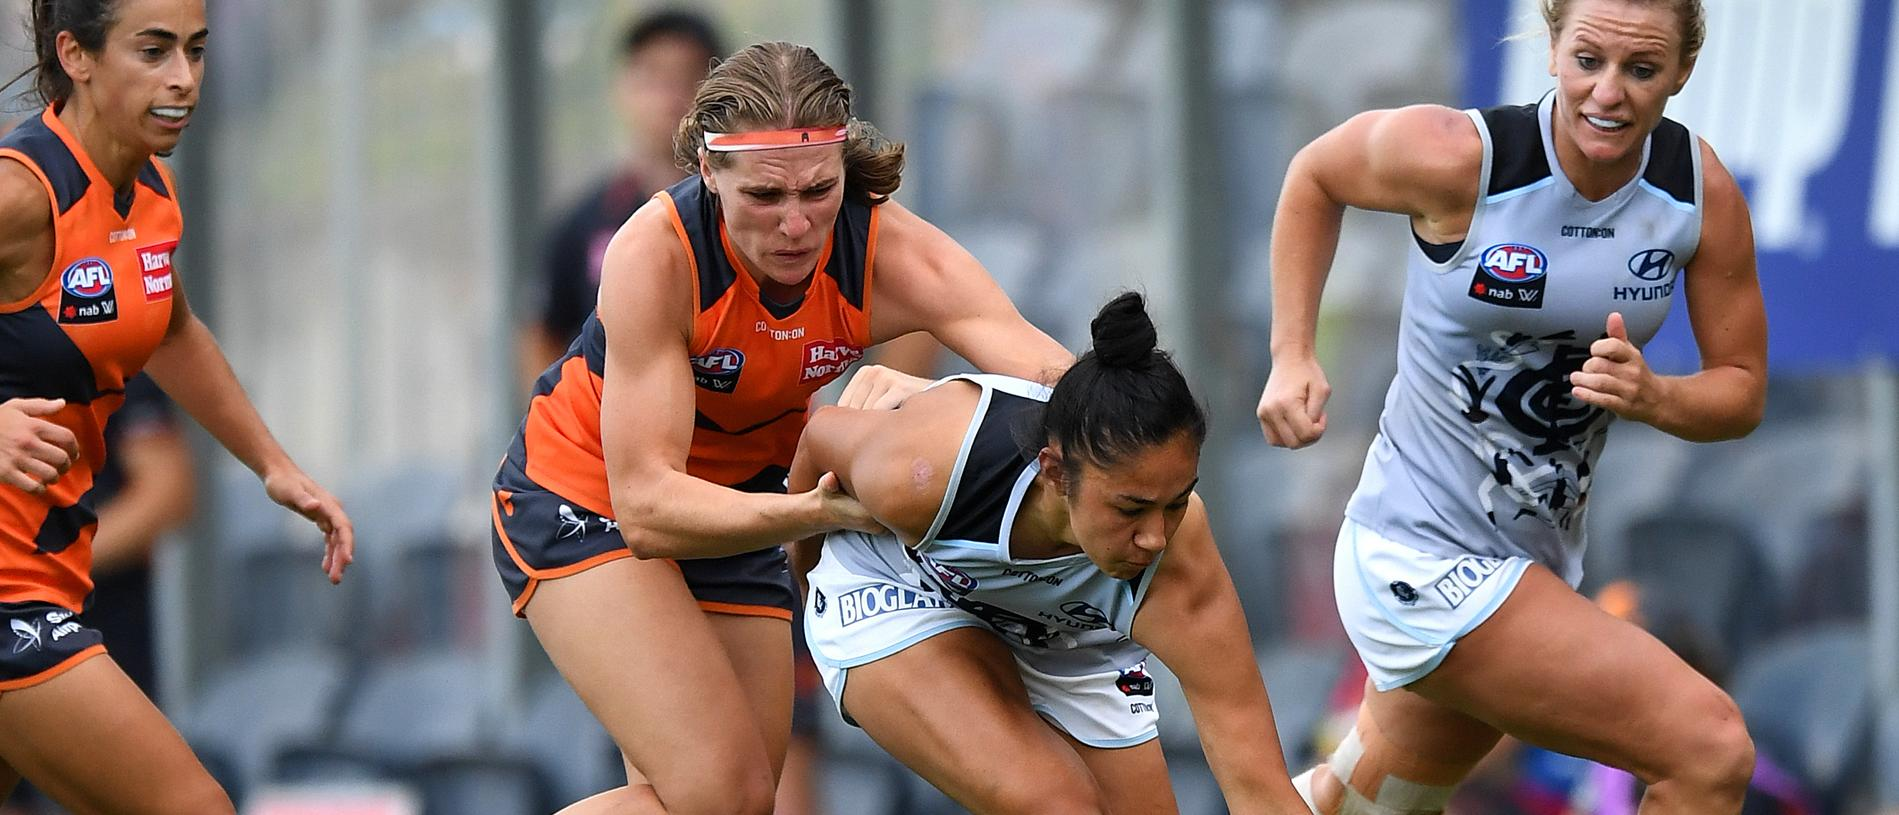 Darcy Vescio of the Blues and Pepa Randall of the Giants during the Round 3 AFLW match between the GWS Giants and the Carlton Blues at Blacktown International Sportspark in Sydney, Saturday, February 16, 2019. (AAP Image/Dylan Coker) NO ARCHIVING, EDITORIAL USE ONLY